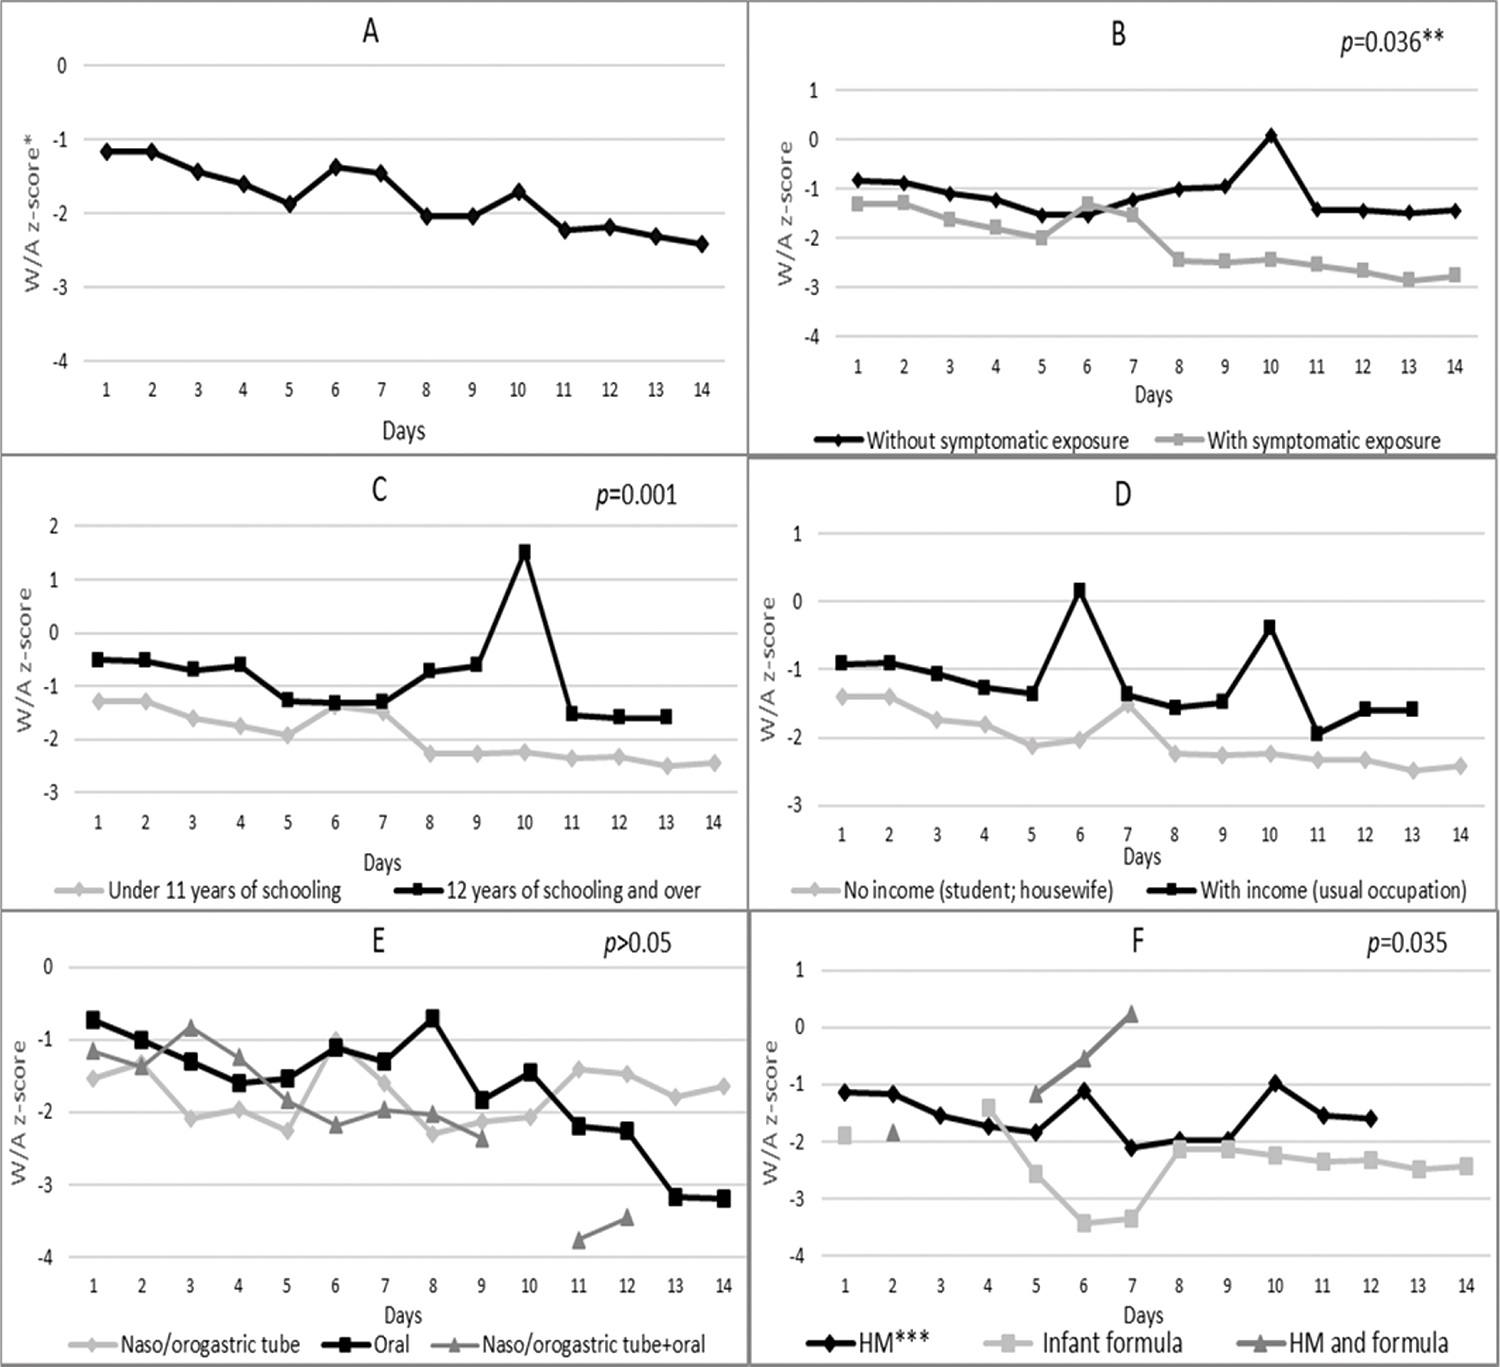 Nutritional status (weight-for-age z-score) of microcephalic newborns at IFF/Fiocruz, Rio de Janeiro, Brazil, 2016: variation according to A – days of hospitalization; B – categories of exposure to Zika virus; C – maternal level of schooling; D – maternal income; E – diet administration route; and F – type of milk consumed during hospitalization.